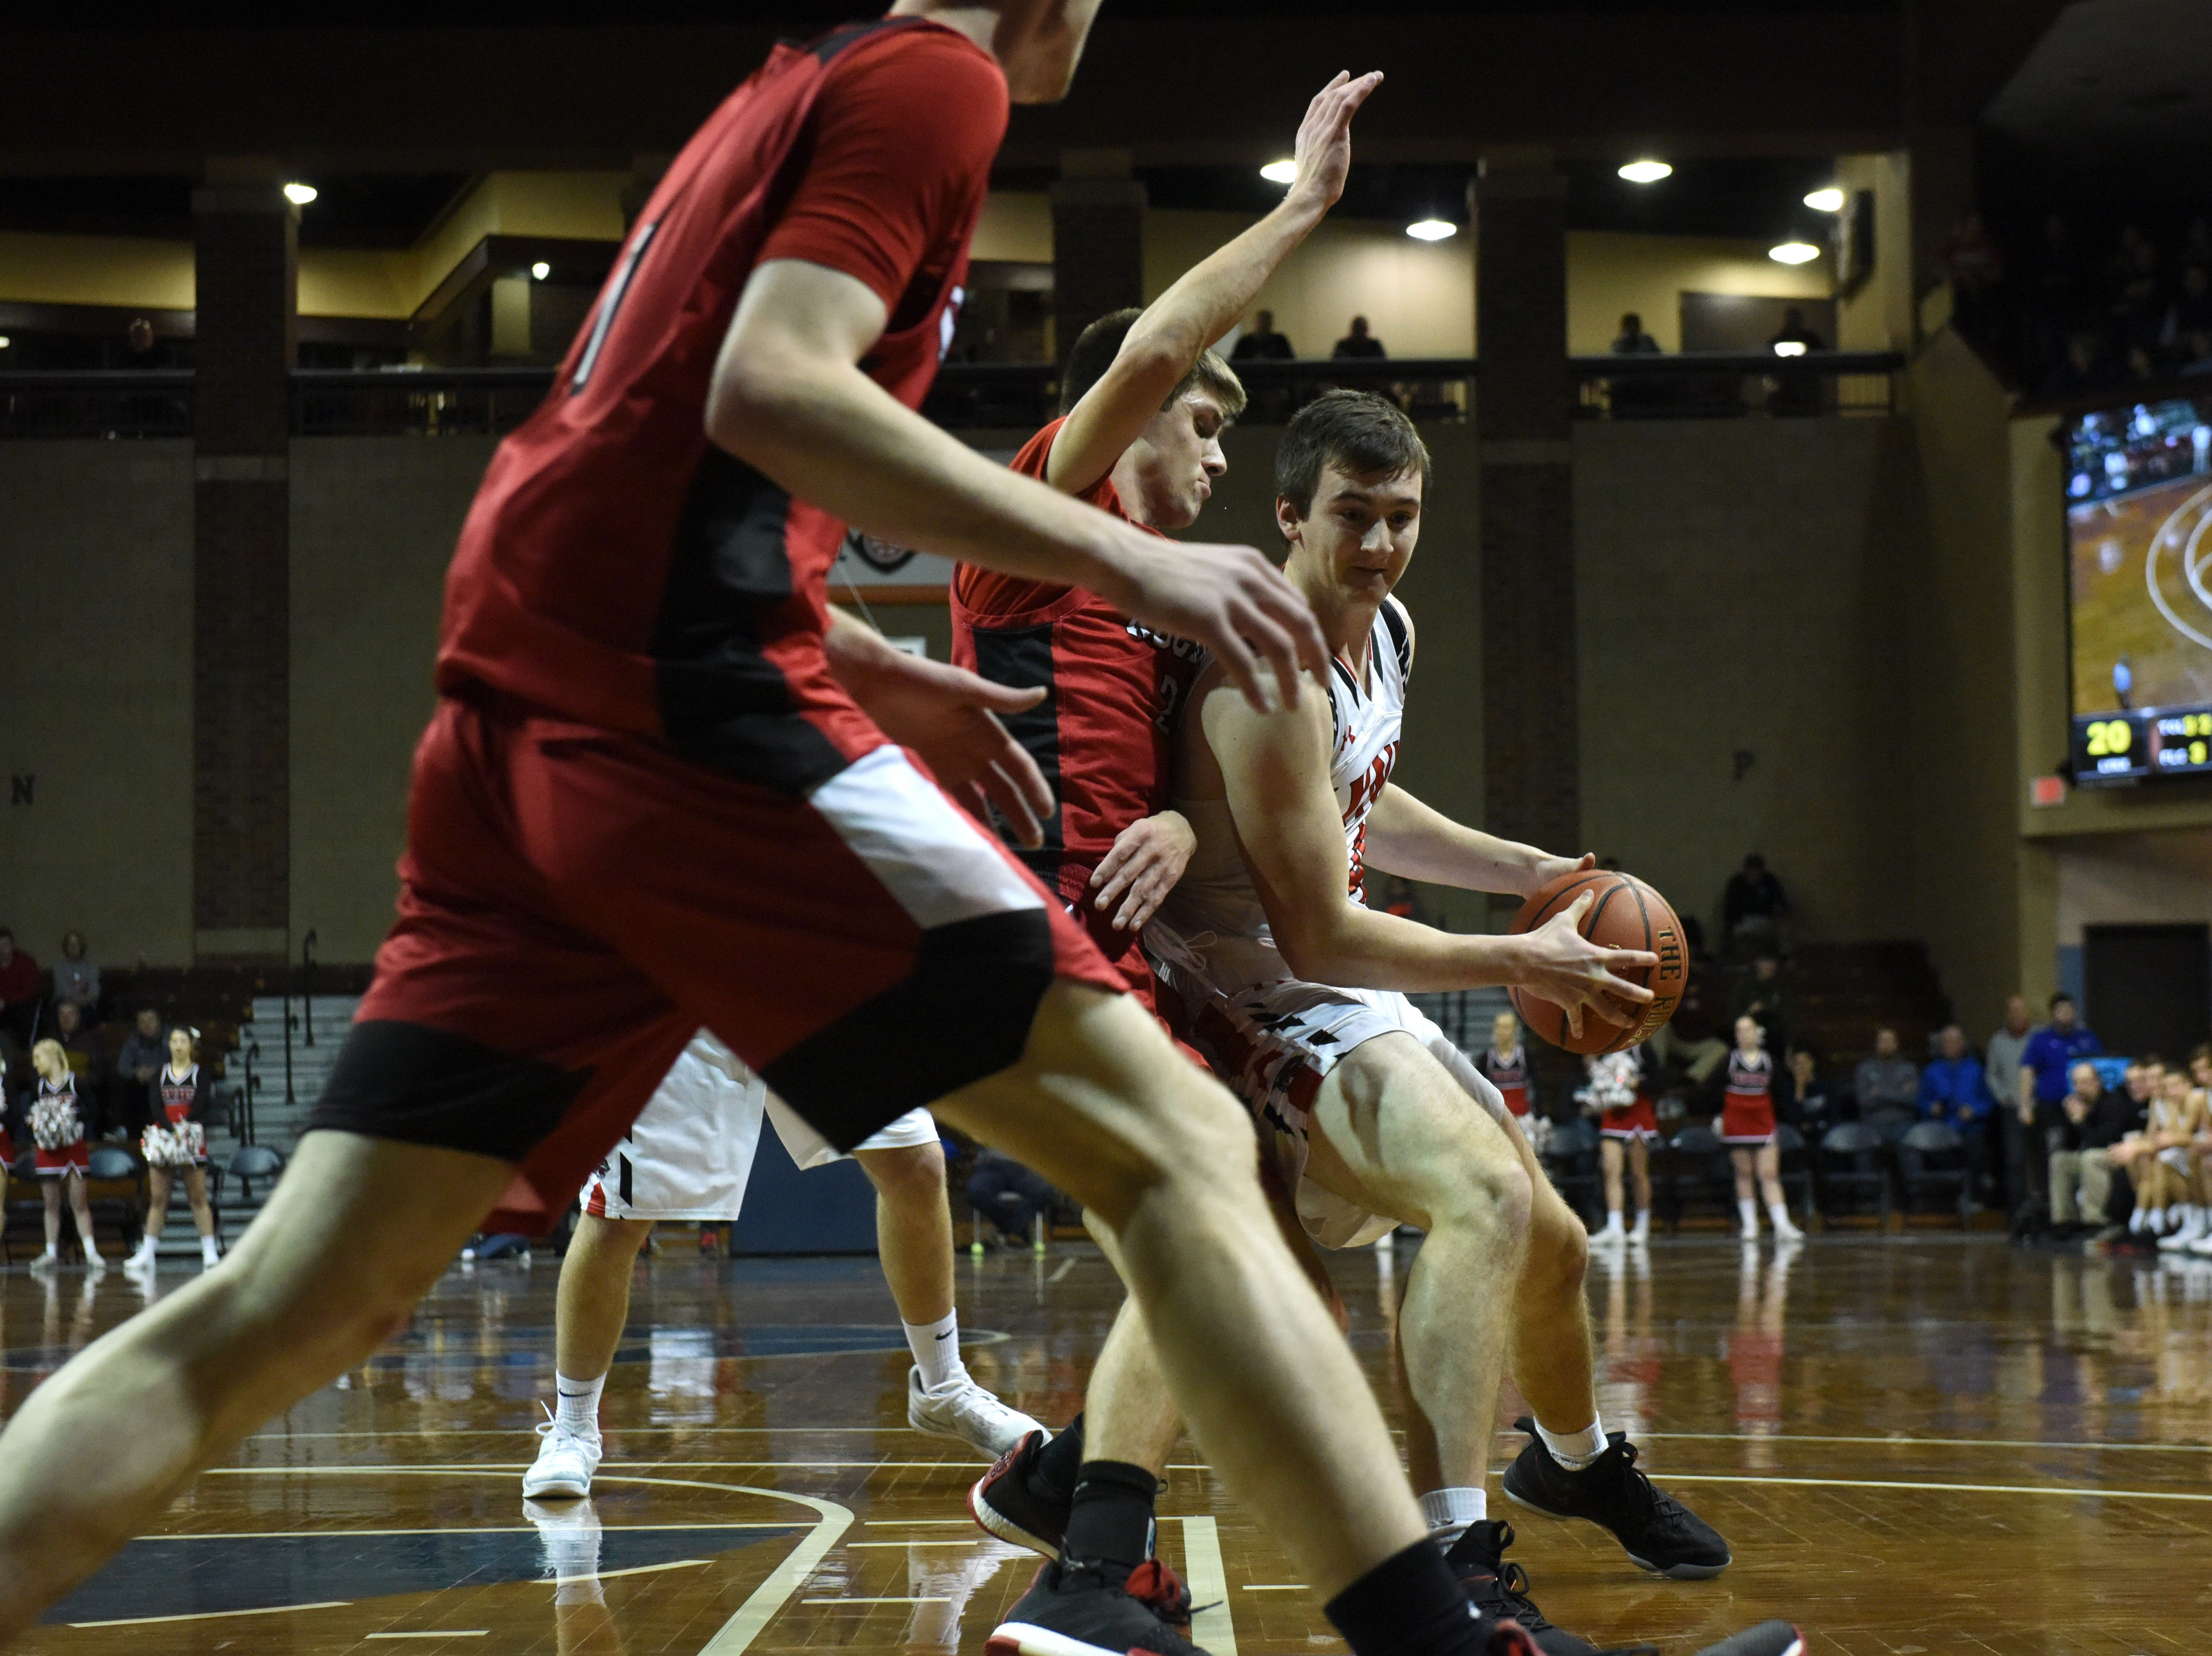 Brandon Valley's Cole Siegfried (14) dribbles the ball during a game against John Marshall at the Hoop City Classic at the Sanford Pentagon in Sioux Falls, S.D., Saturday, Dec. 29, 2018.